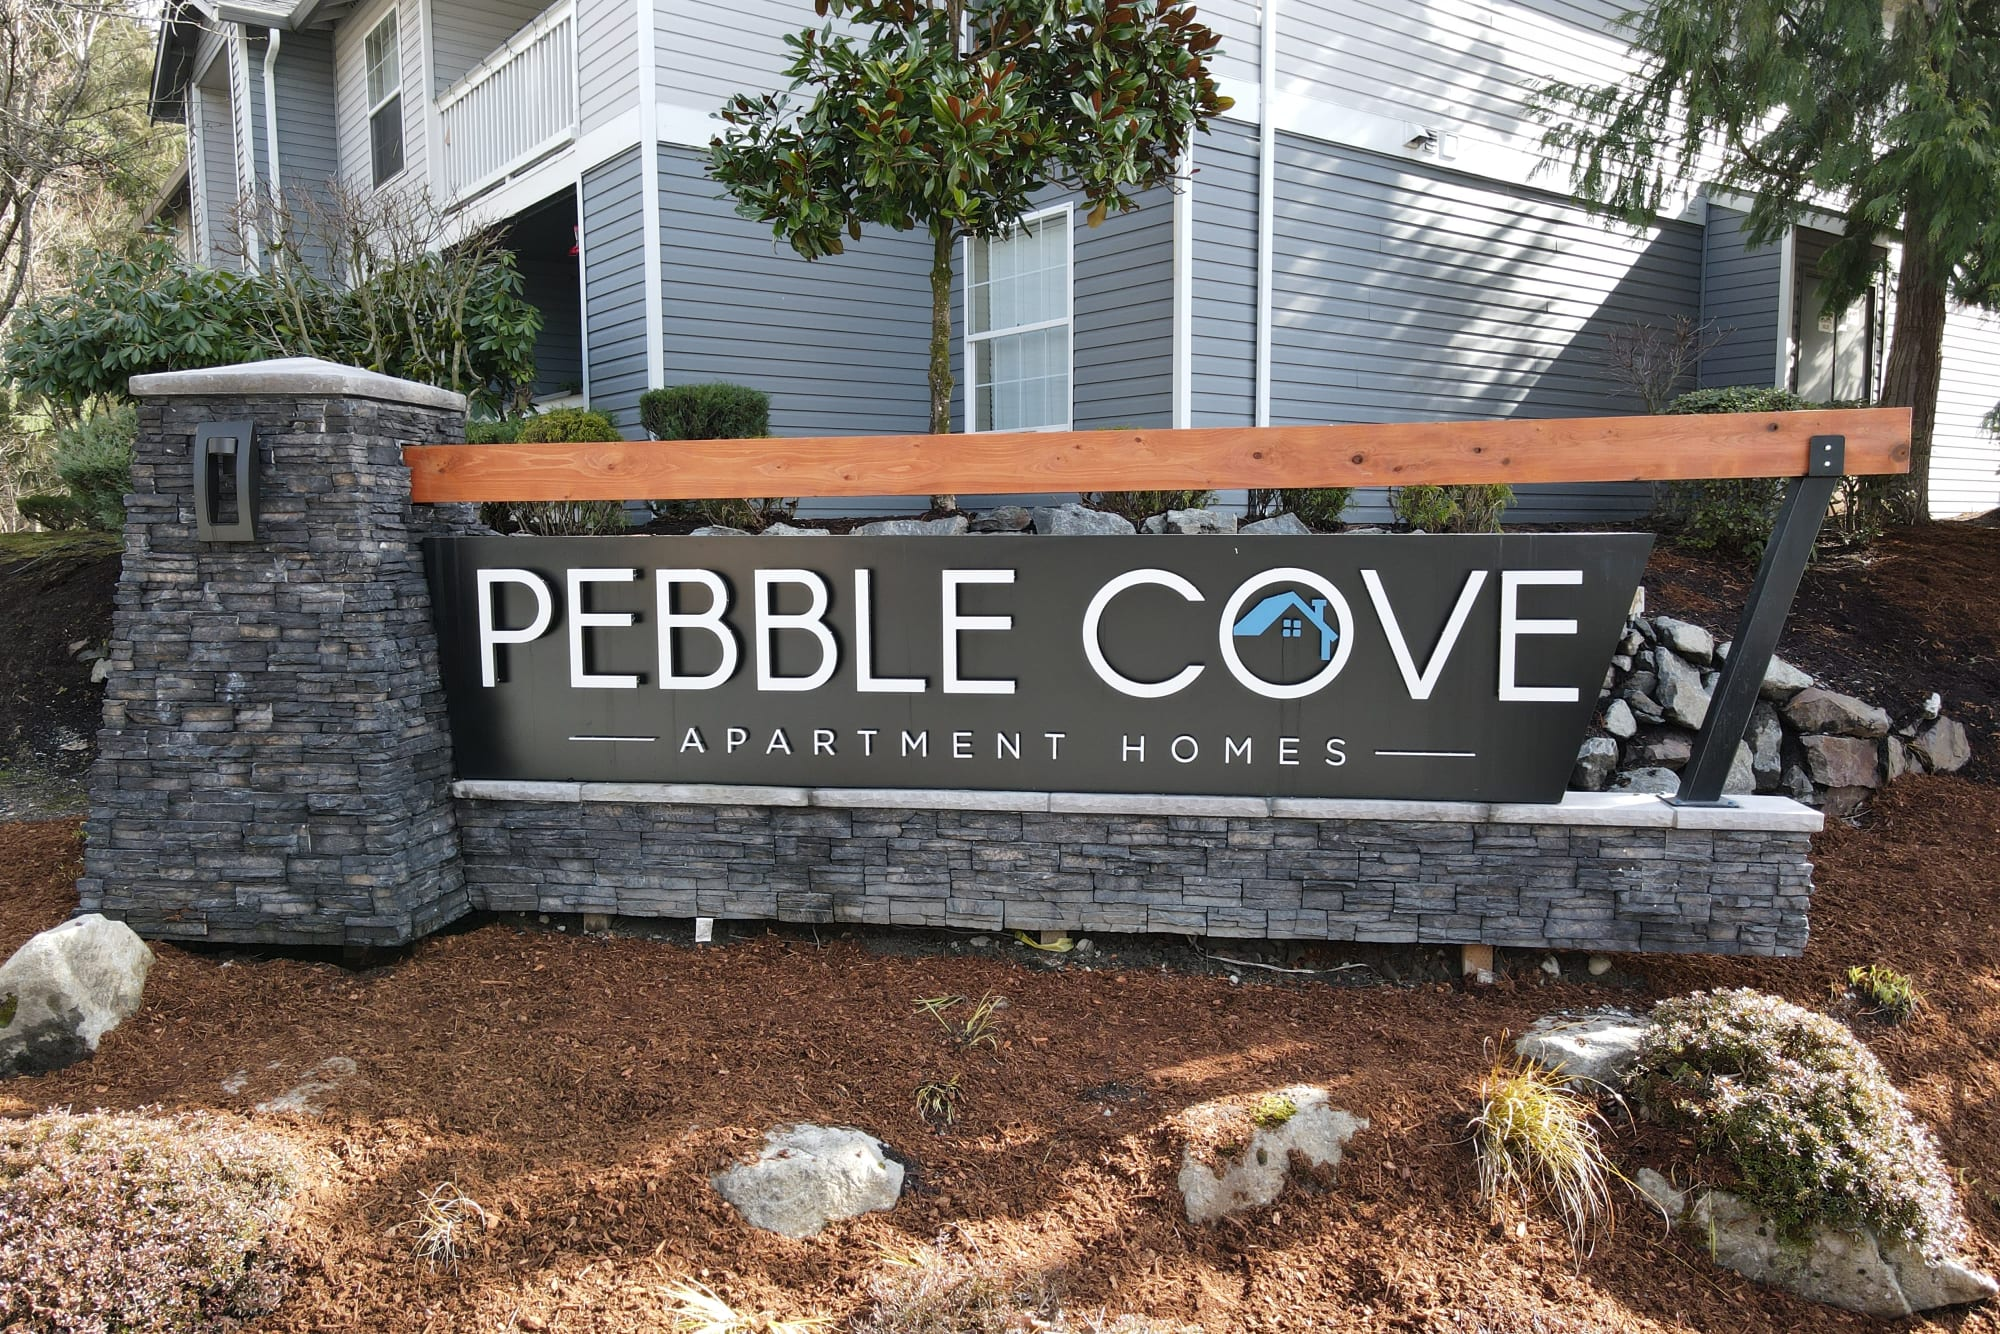 Monument sign at Pebble Cove Apartments in Renton, Washington